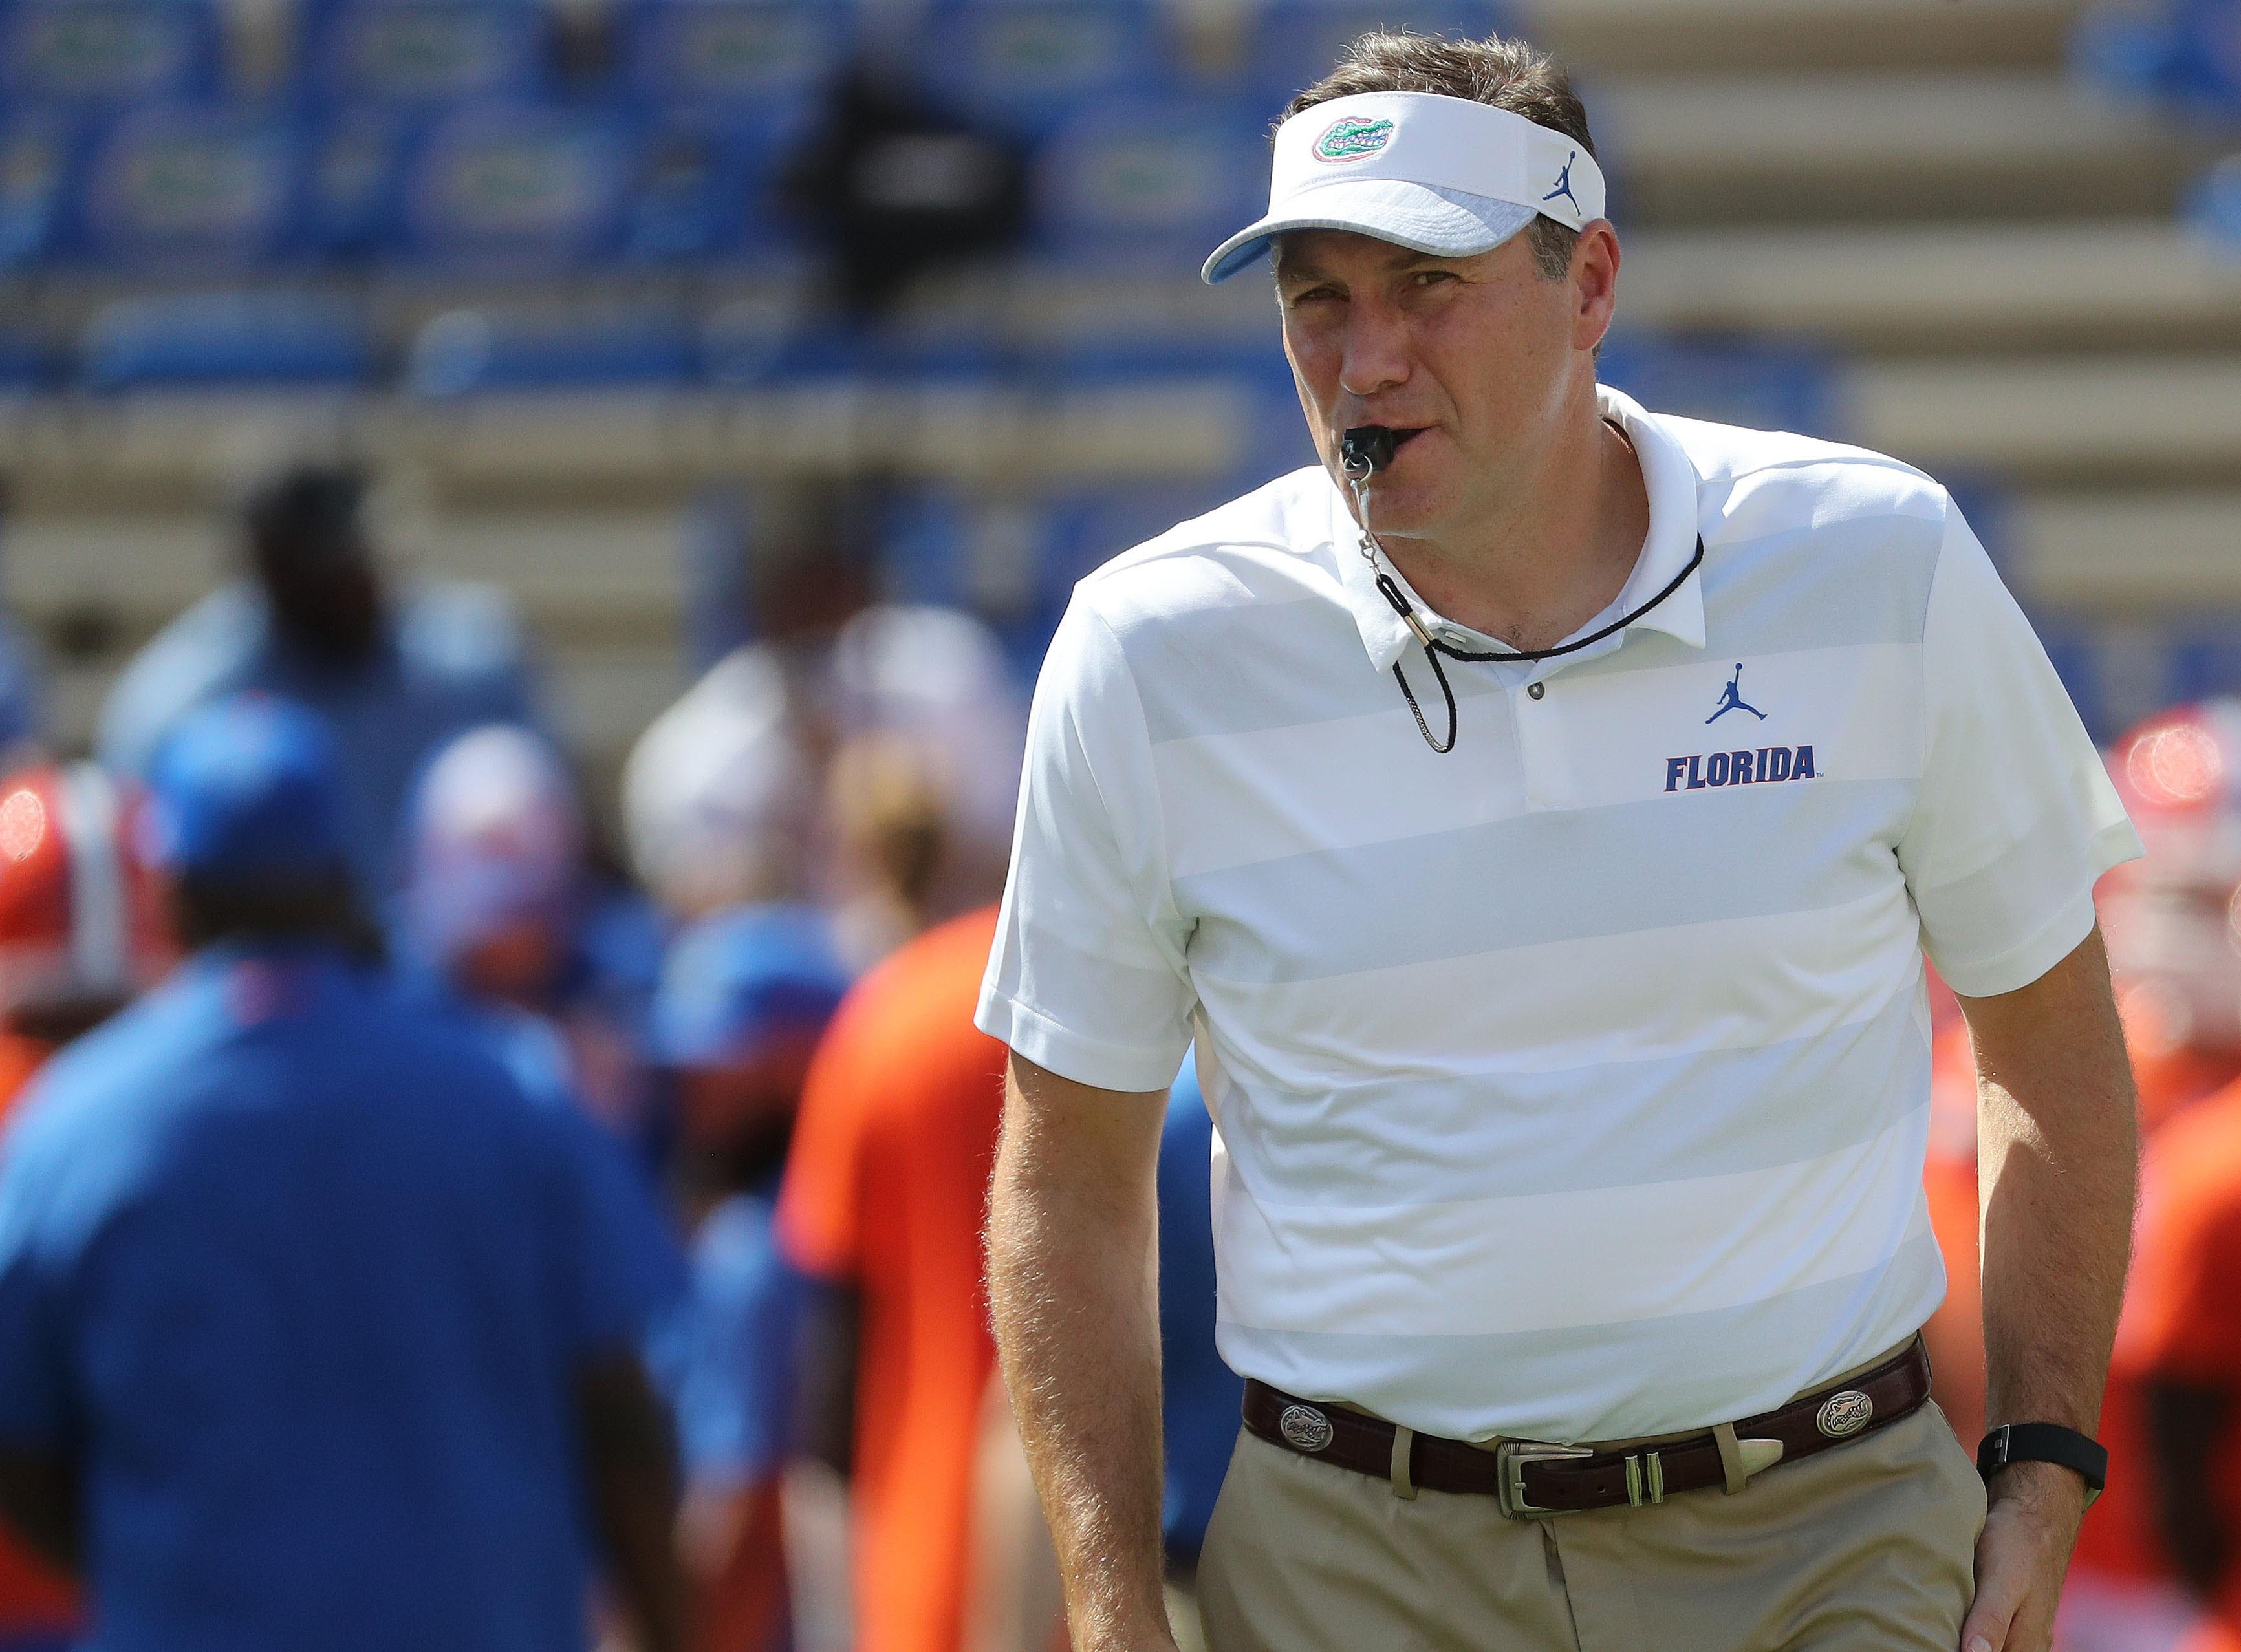 Sep 15, 2018; Gainesville, FL, USA; Florida Gators head coach Dan Mullen prior to the game against the Colorado State Rams at Ben Hill Griffin Stadium. Mandatory Credit: Kim Klement-USA TODAY Sports